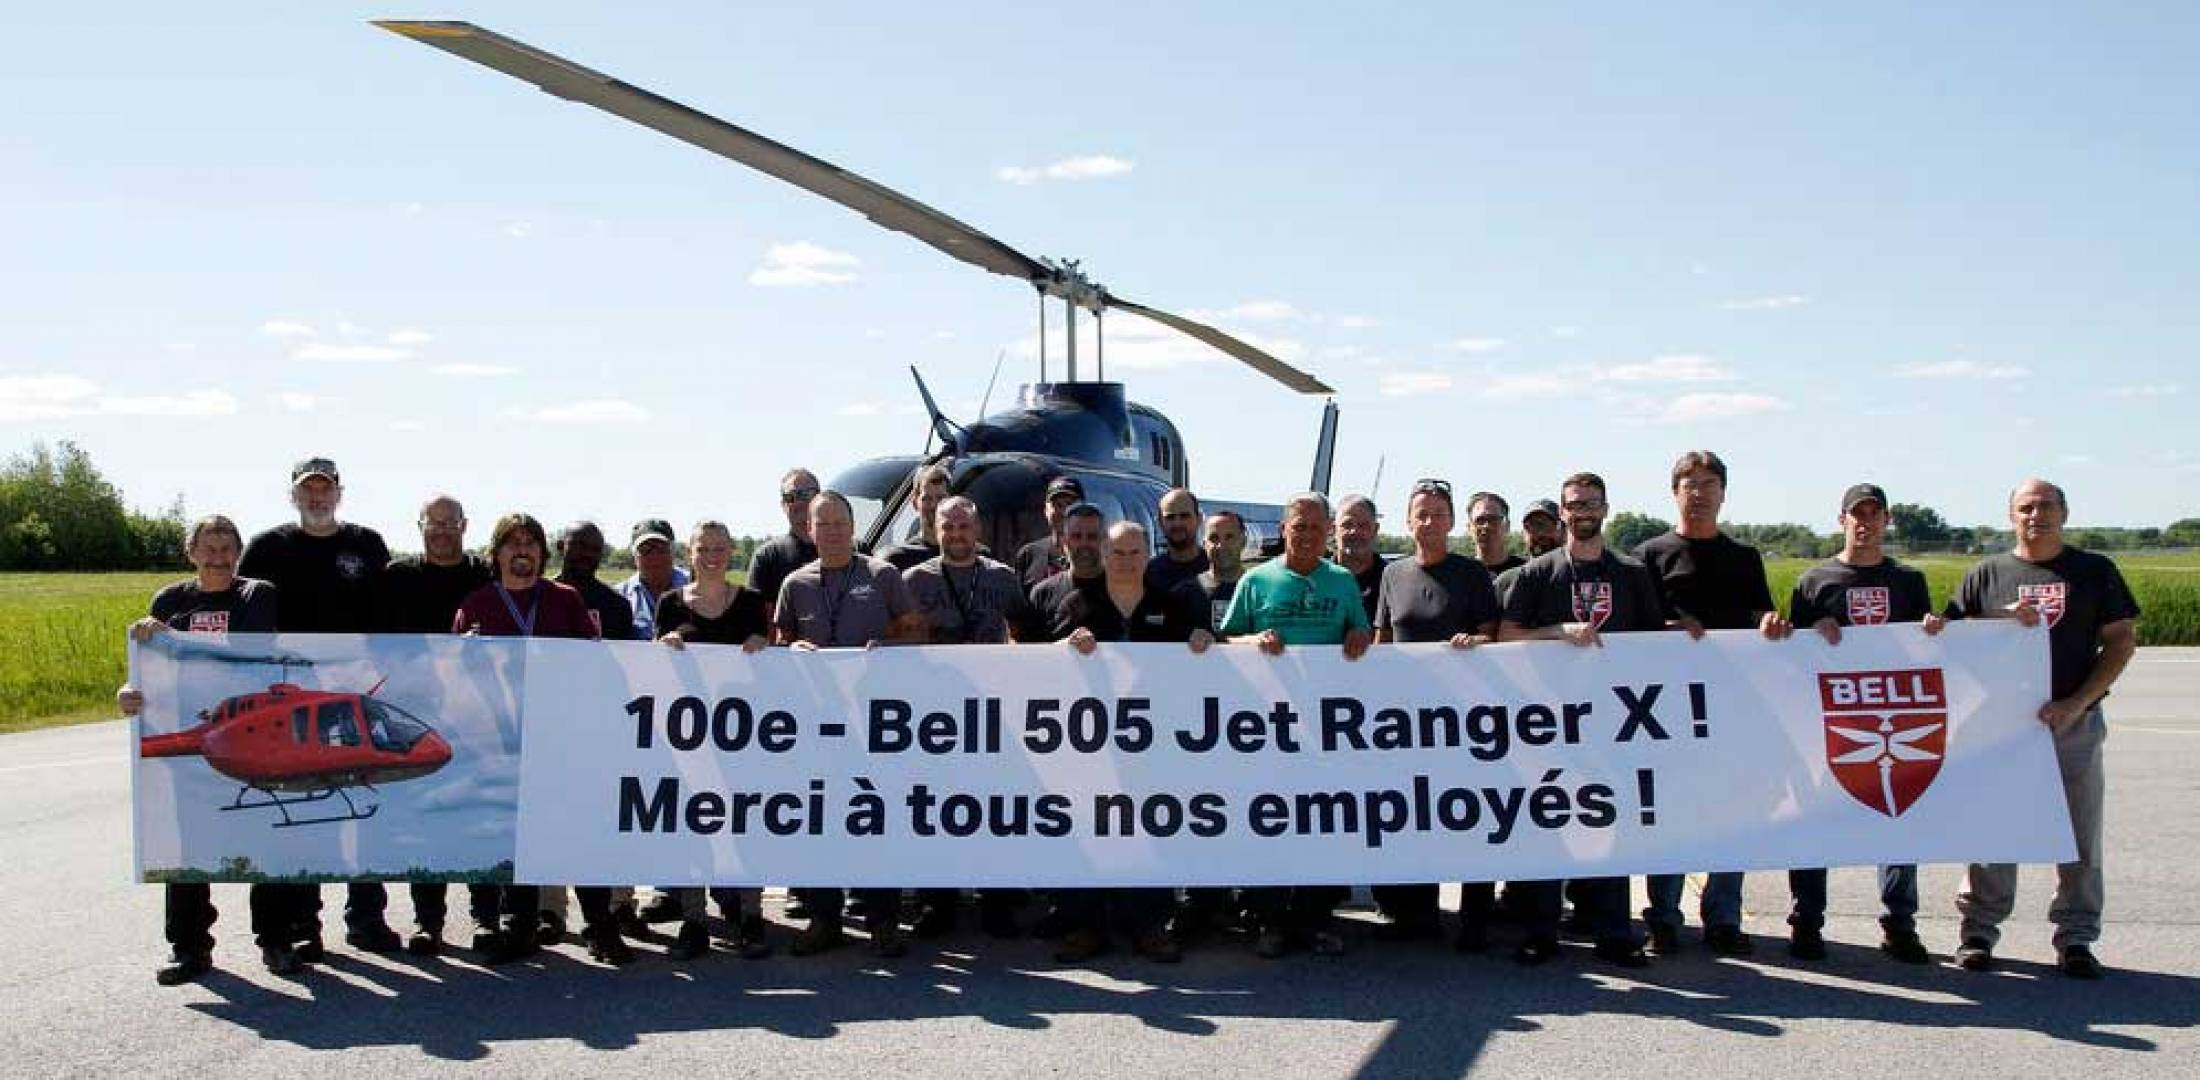 Bell workers celebrating delivery of the 100th Bell 505